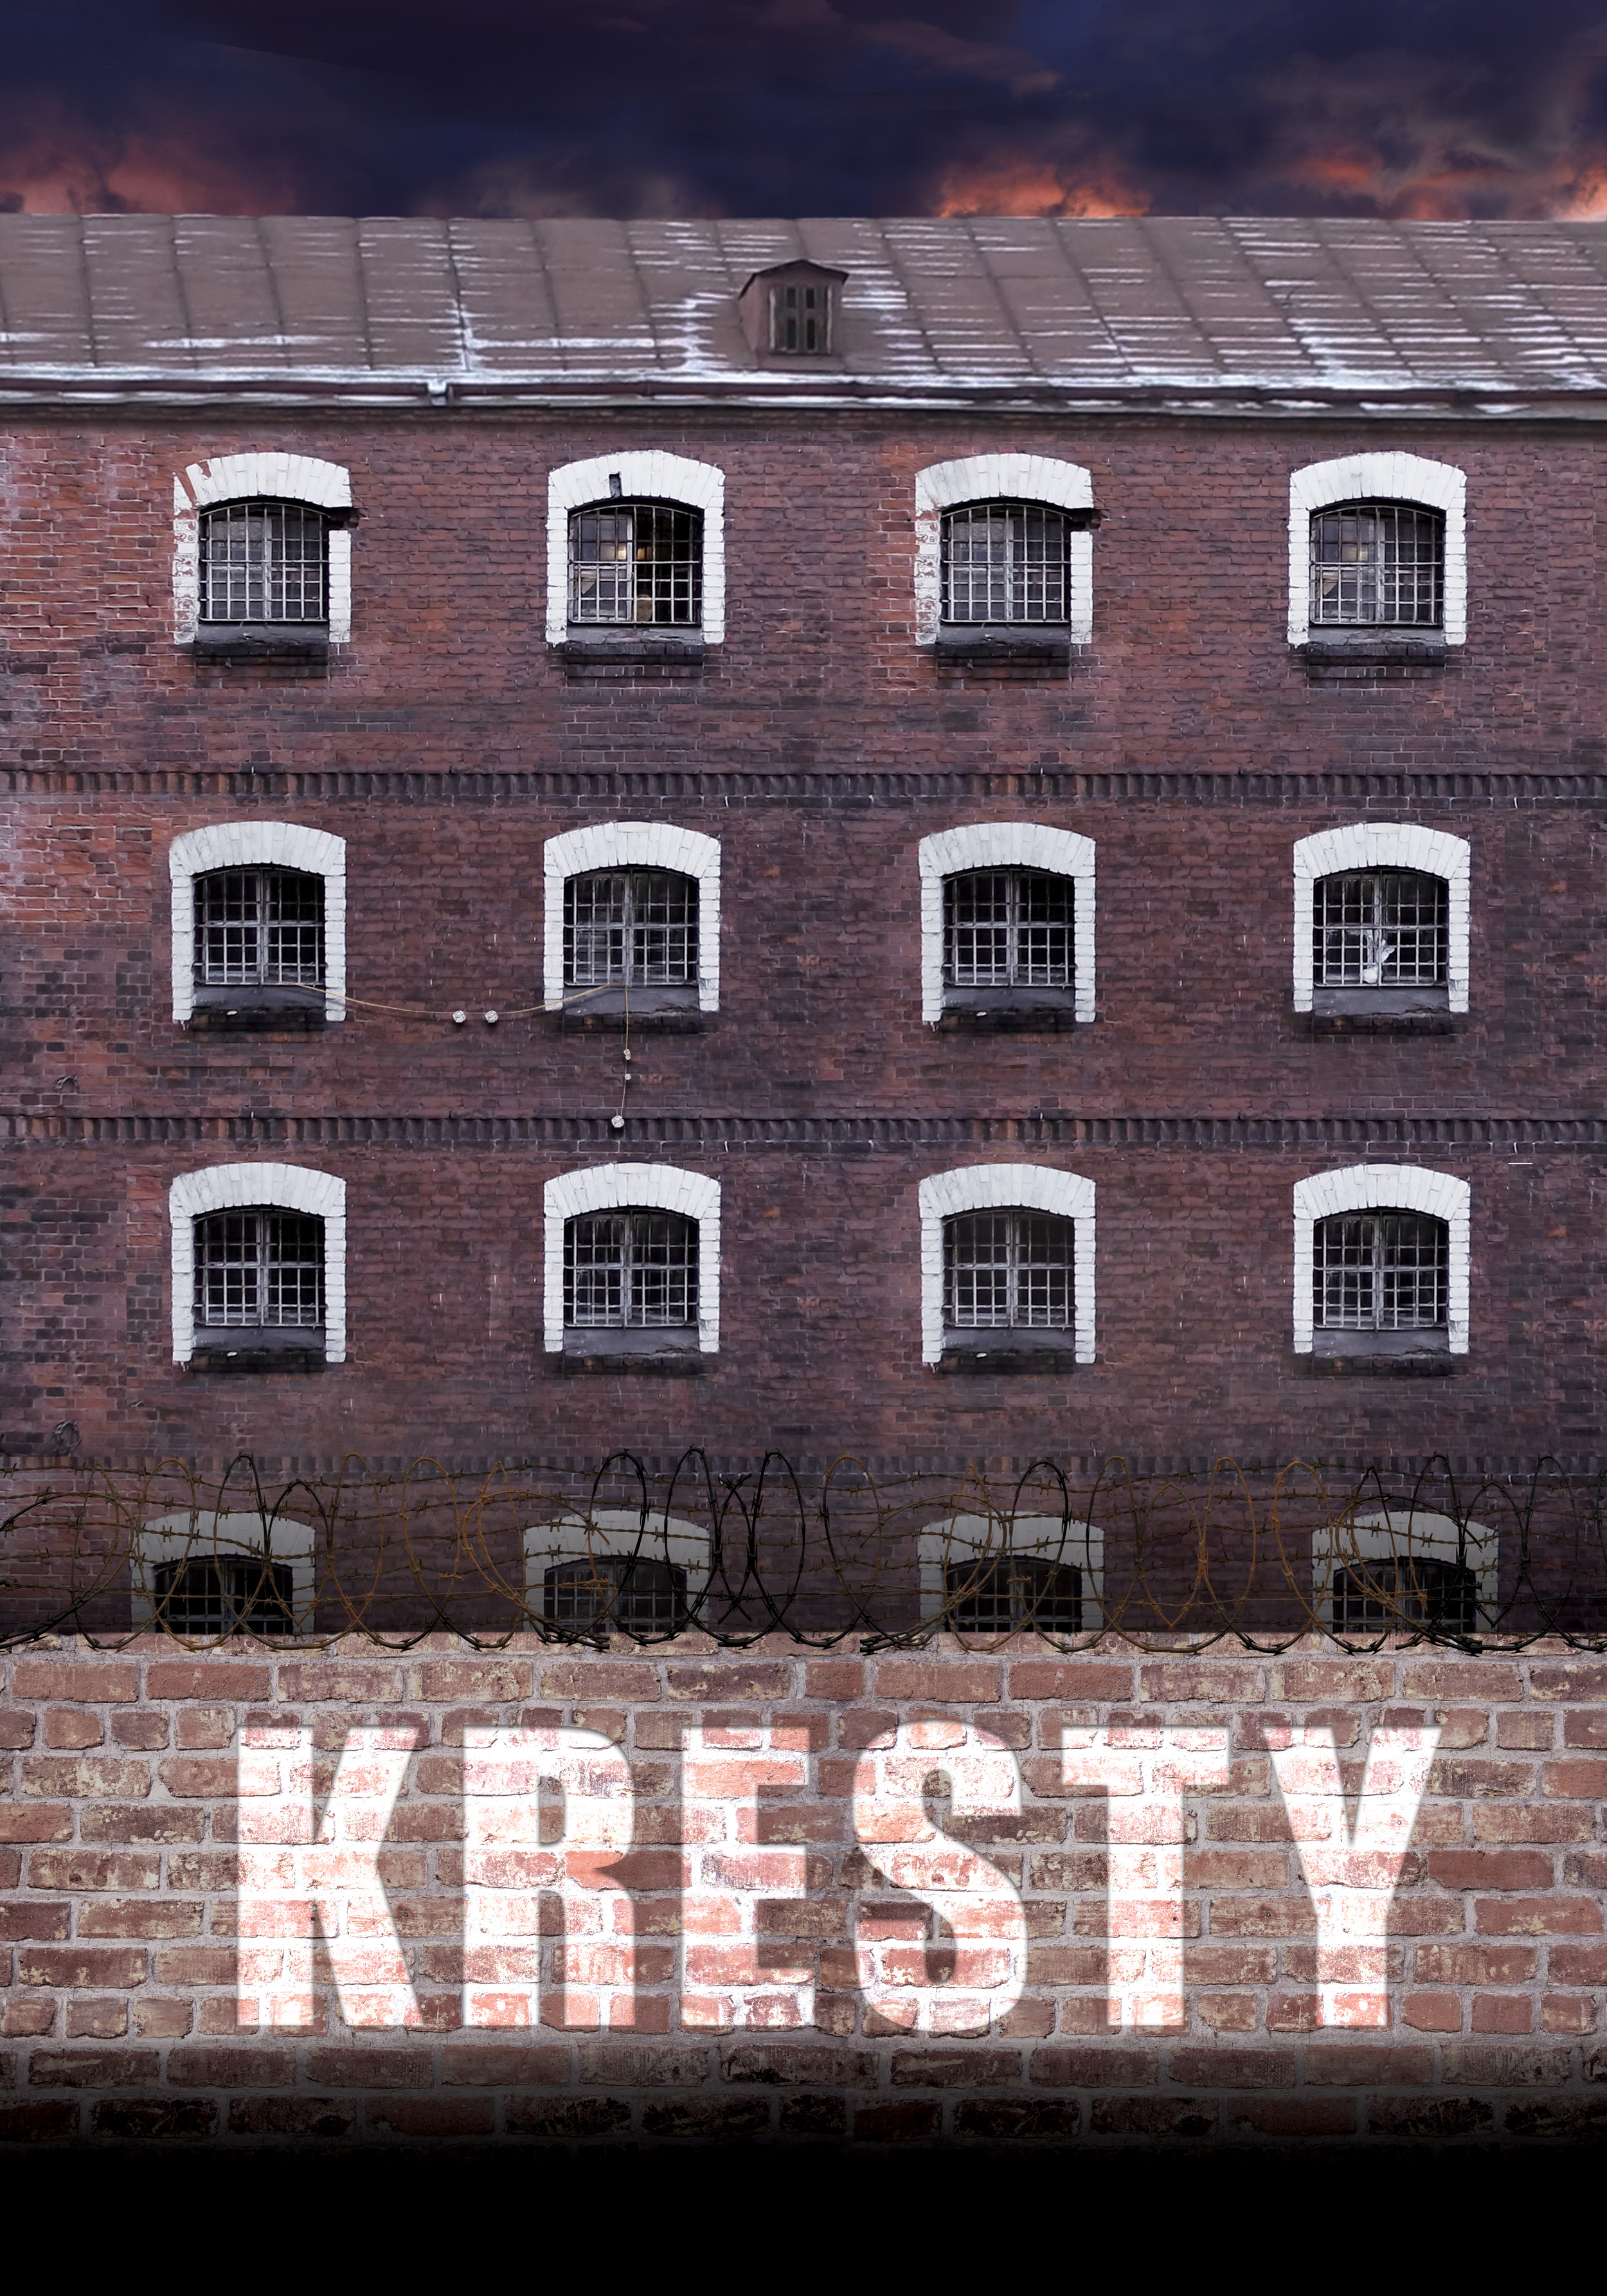 THE DOCUMENTARY KRESTY WILL BE RELEASED ON NETFLIX